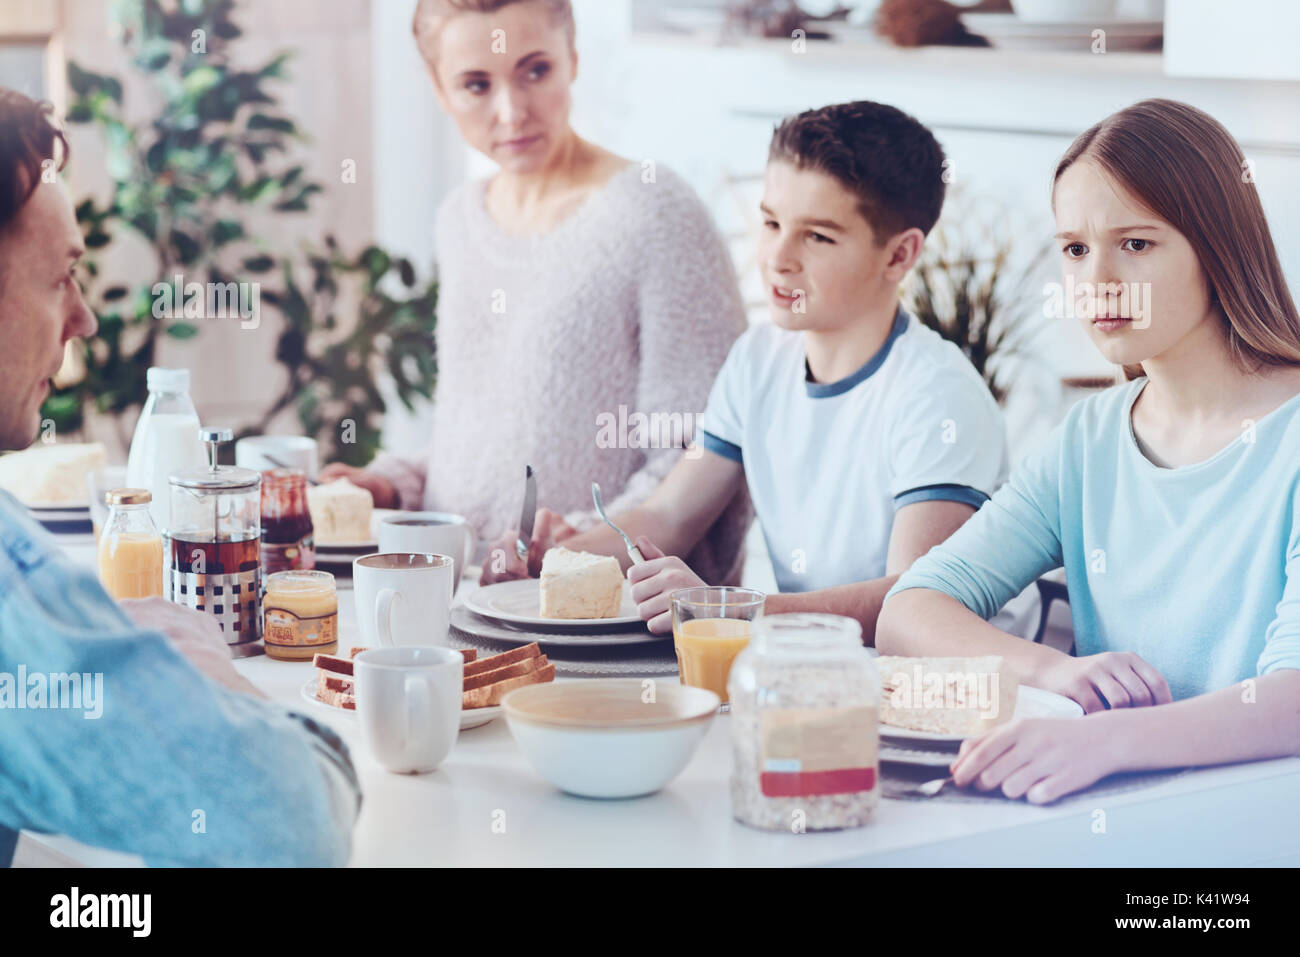 Puzzled teenage girl looking into vacancy during breakfast with family - Stock Image